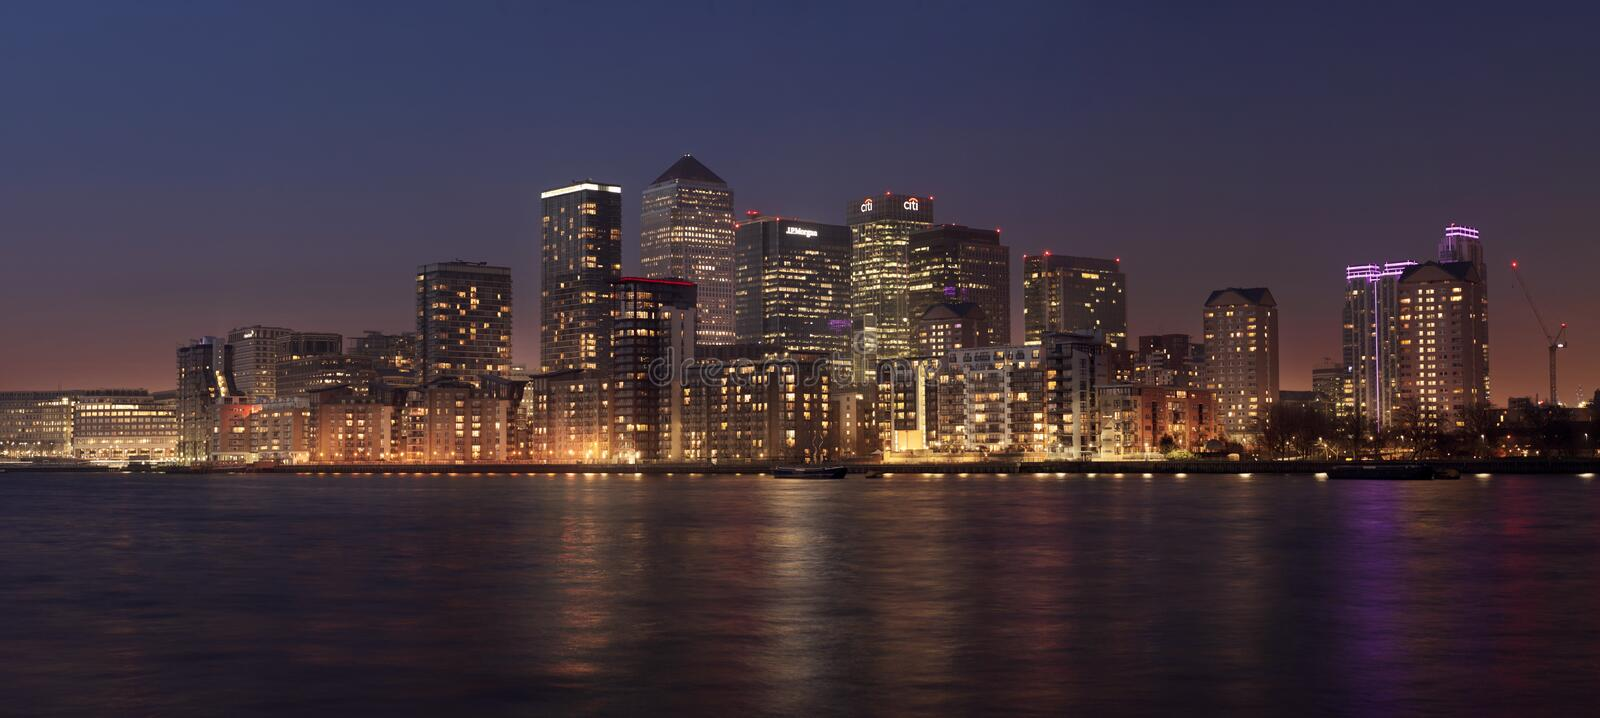 Panorama view of Canary Wharf district at dusk